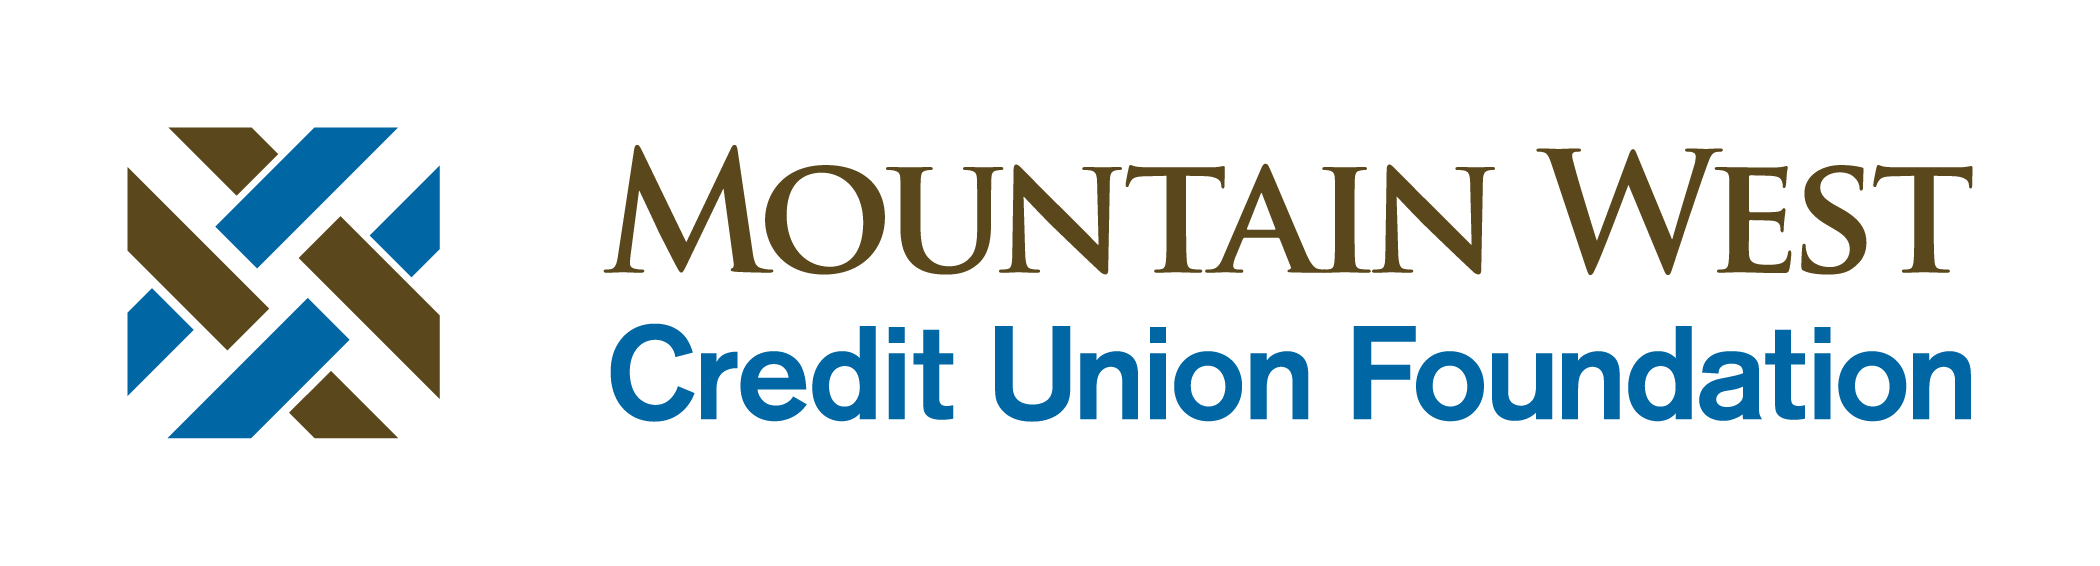 Mountain West Credit Union Foundation logo